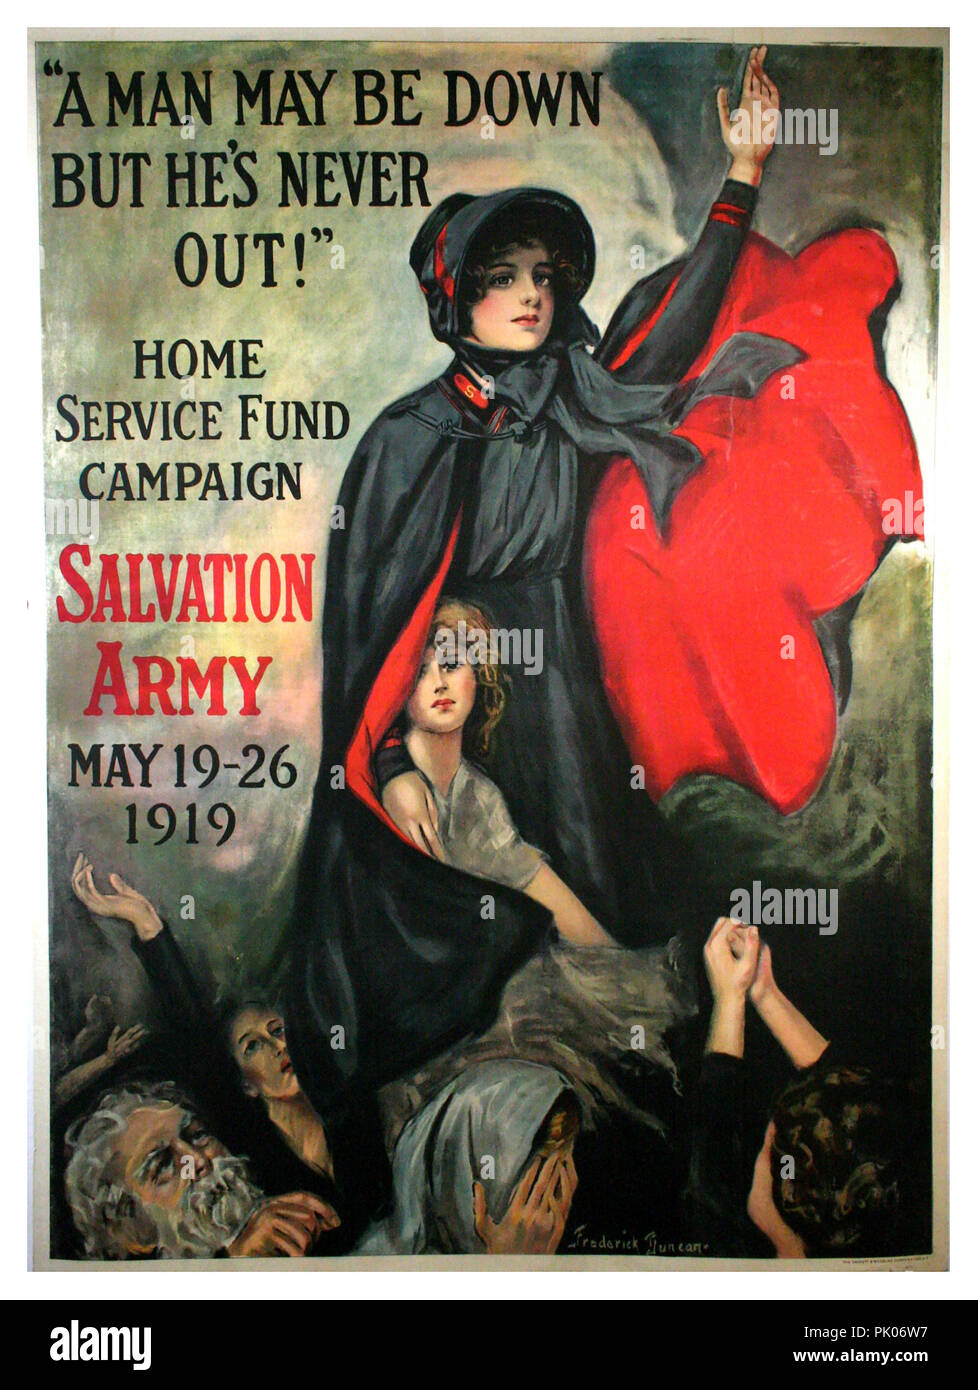 "Vintage Salvation Army fund raising poster 1919 post World War 1 'Home Service Fund Campaign' May 19-26 ""A MAN MAYBE DOWN BUT HE'S NEVER OUT !"" - Stock Image"